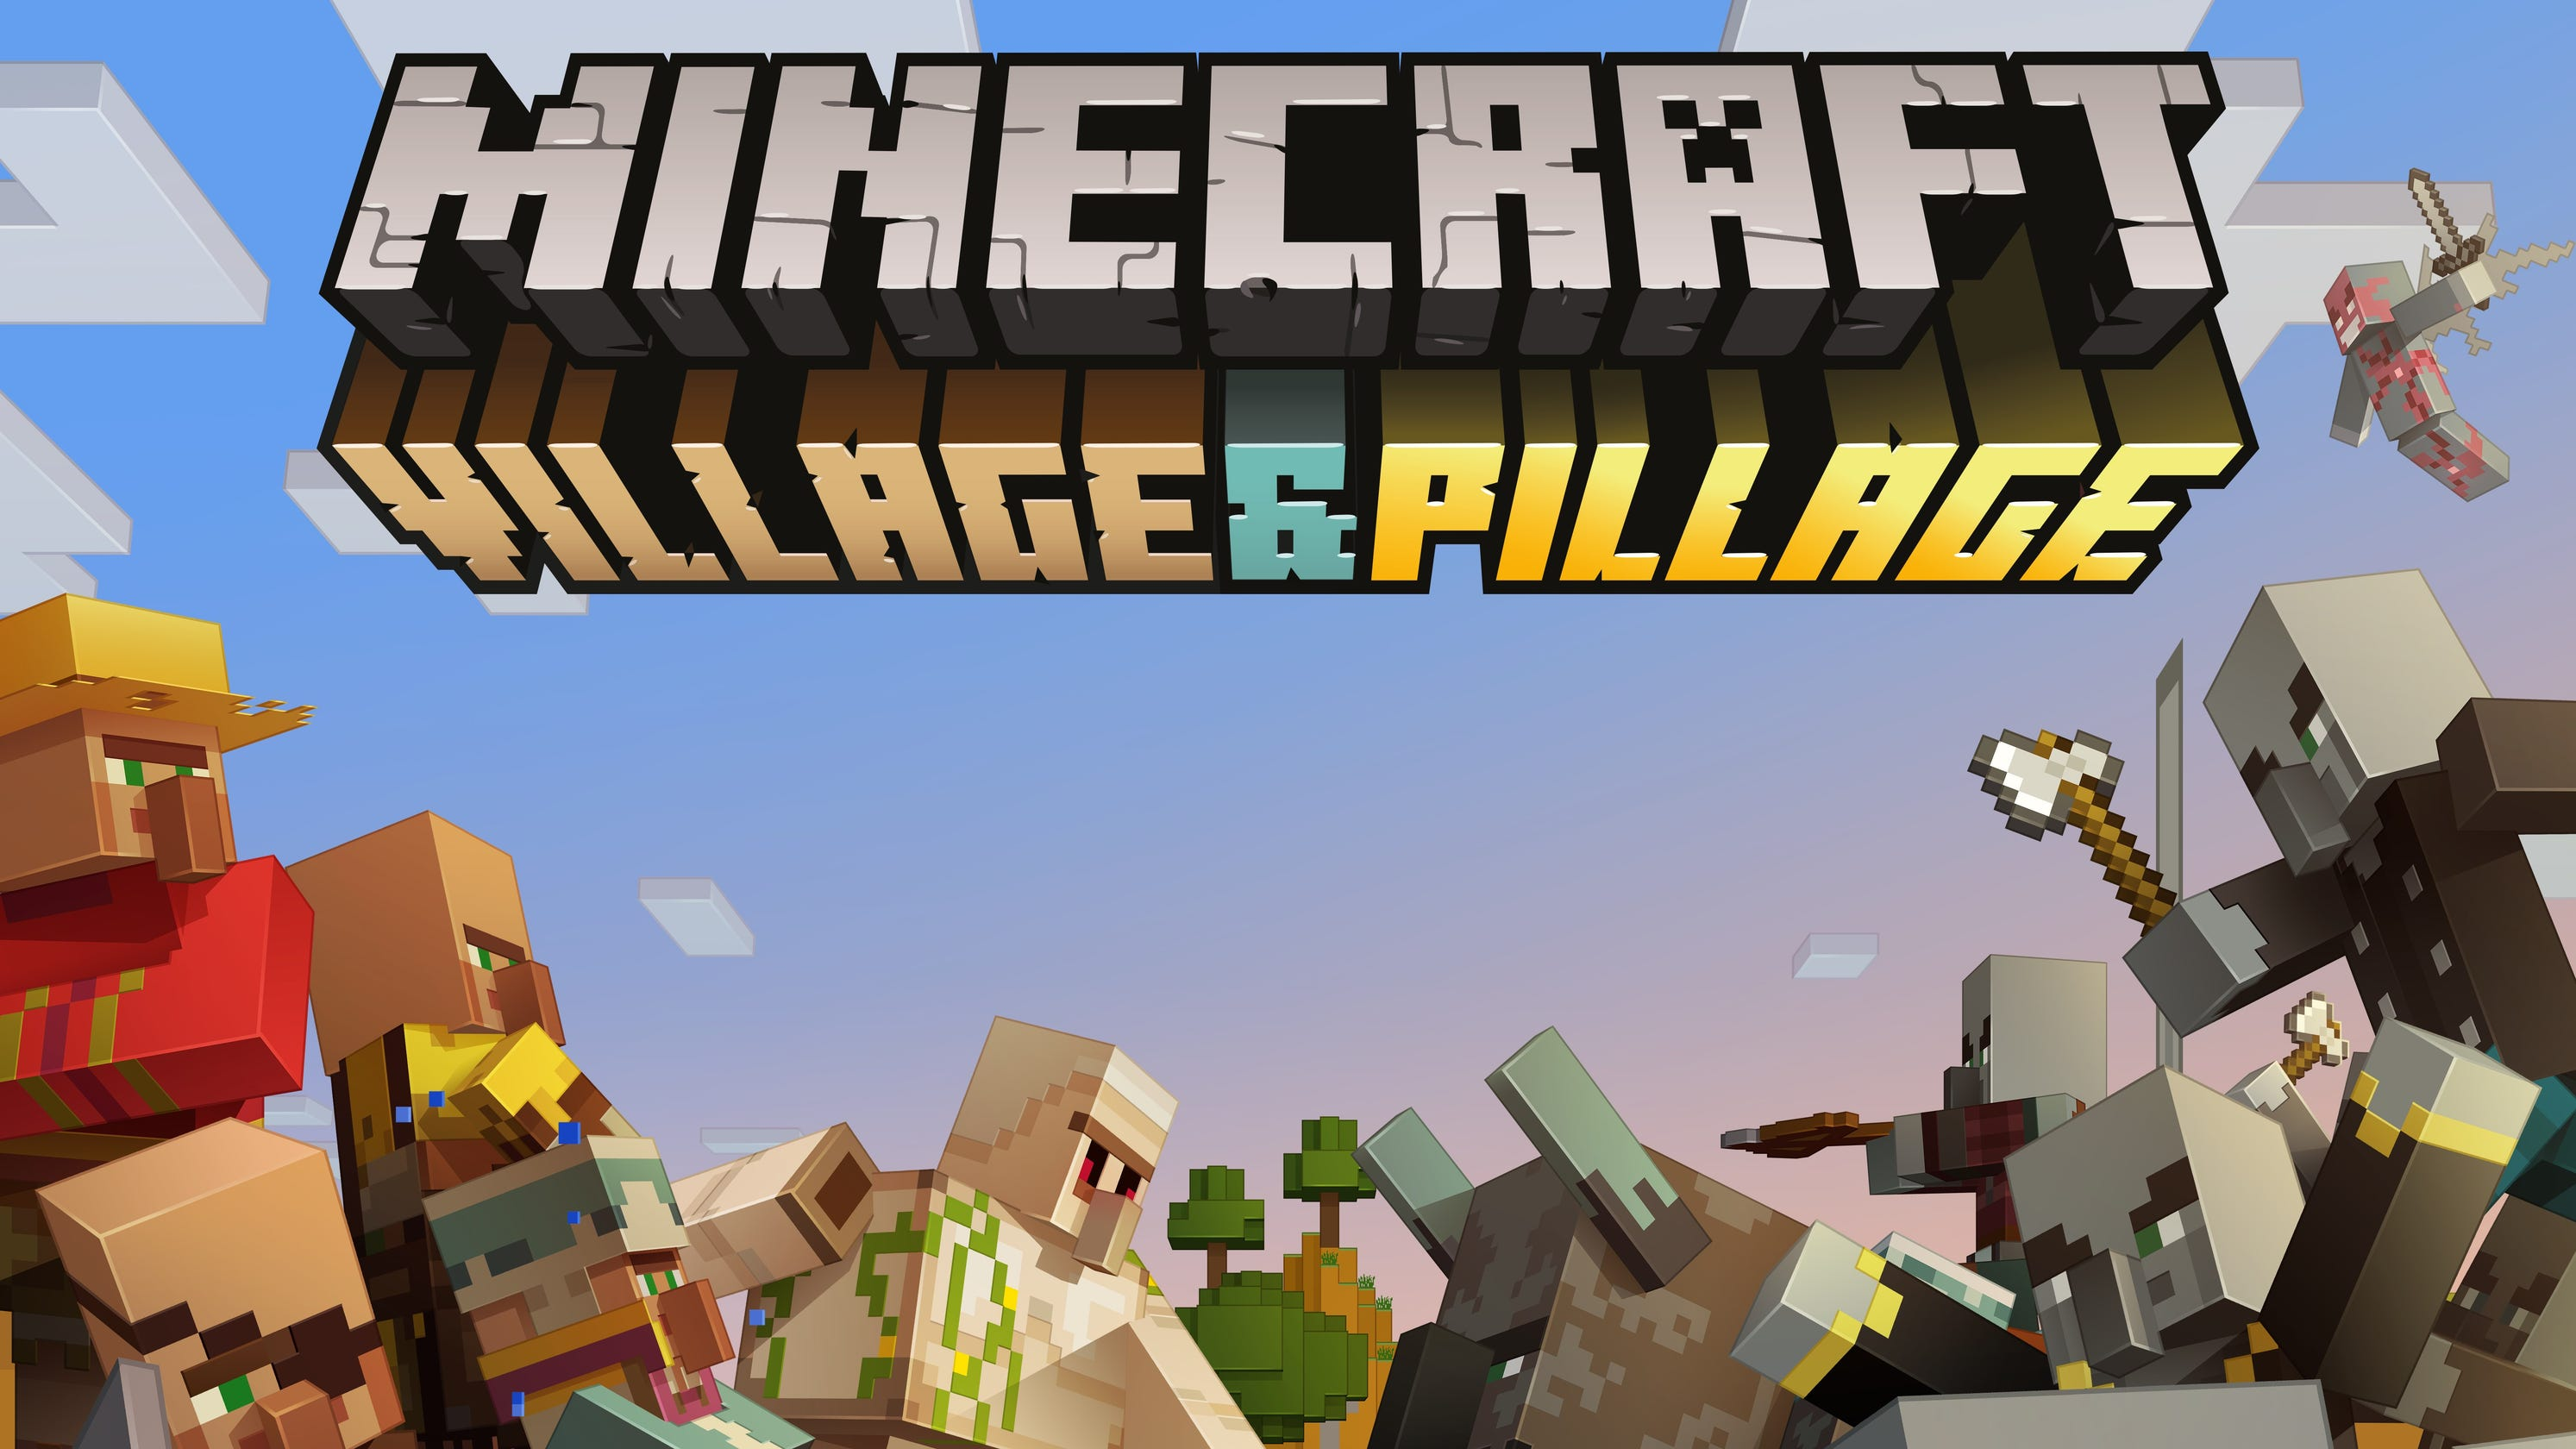 New 'Minecraft' update means better villages, pillagers with crossbows